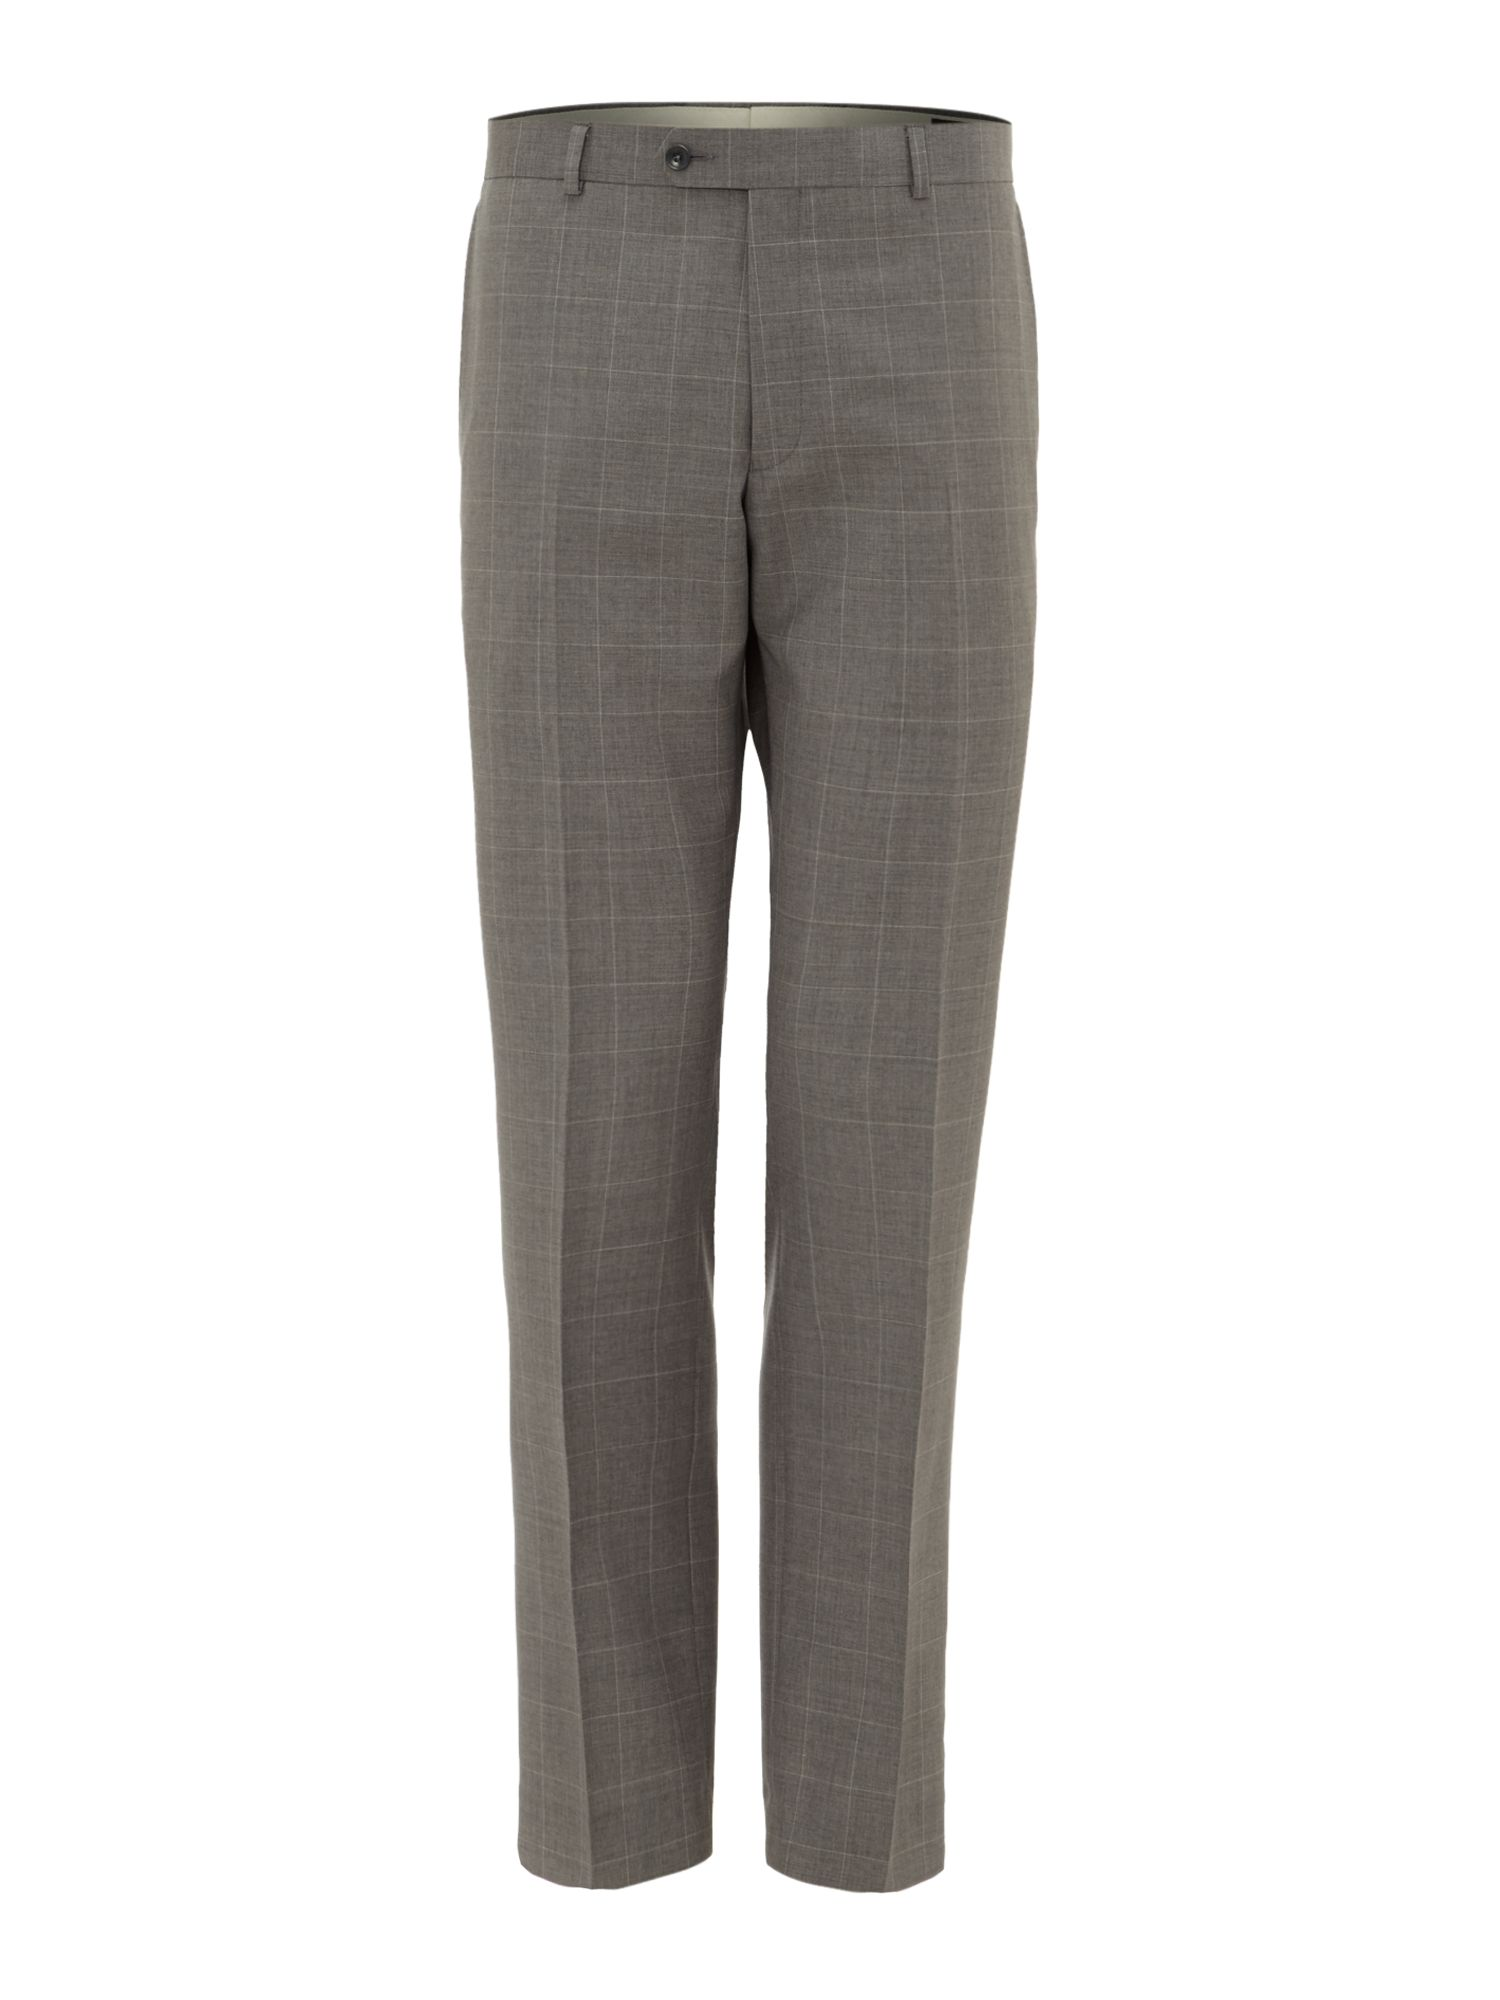 Lambo windowpane check suit trousers